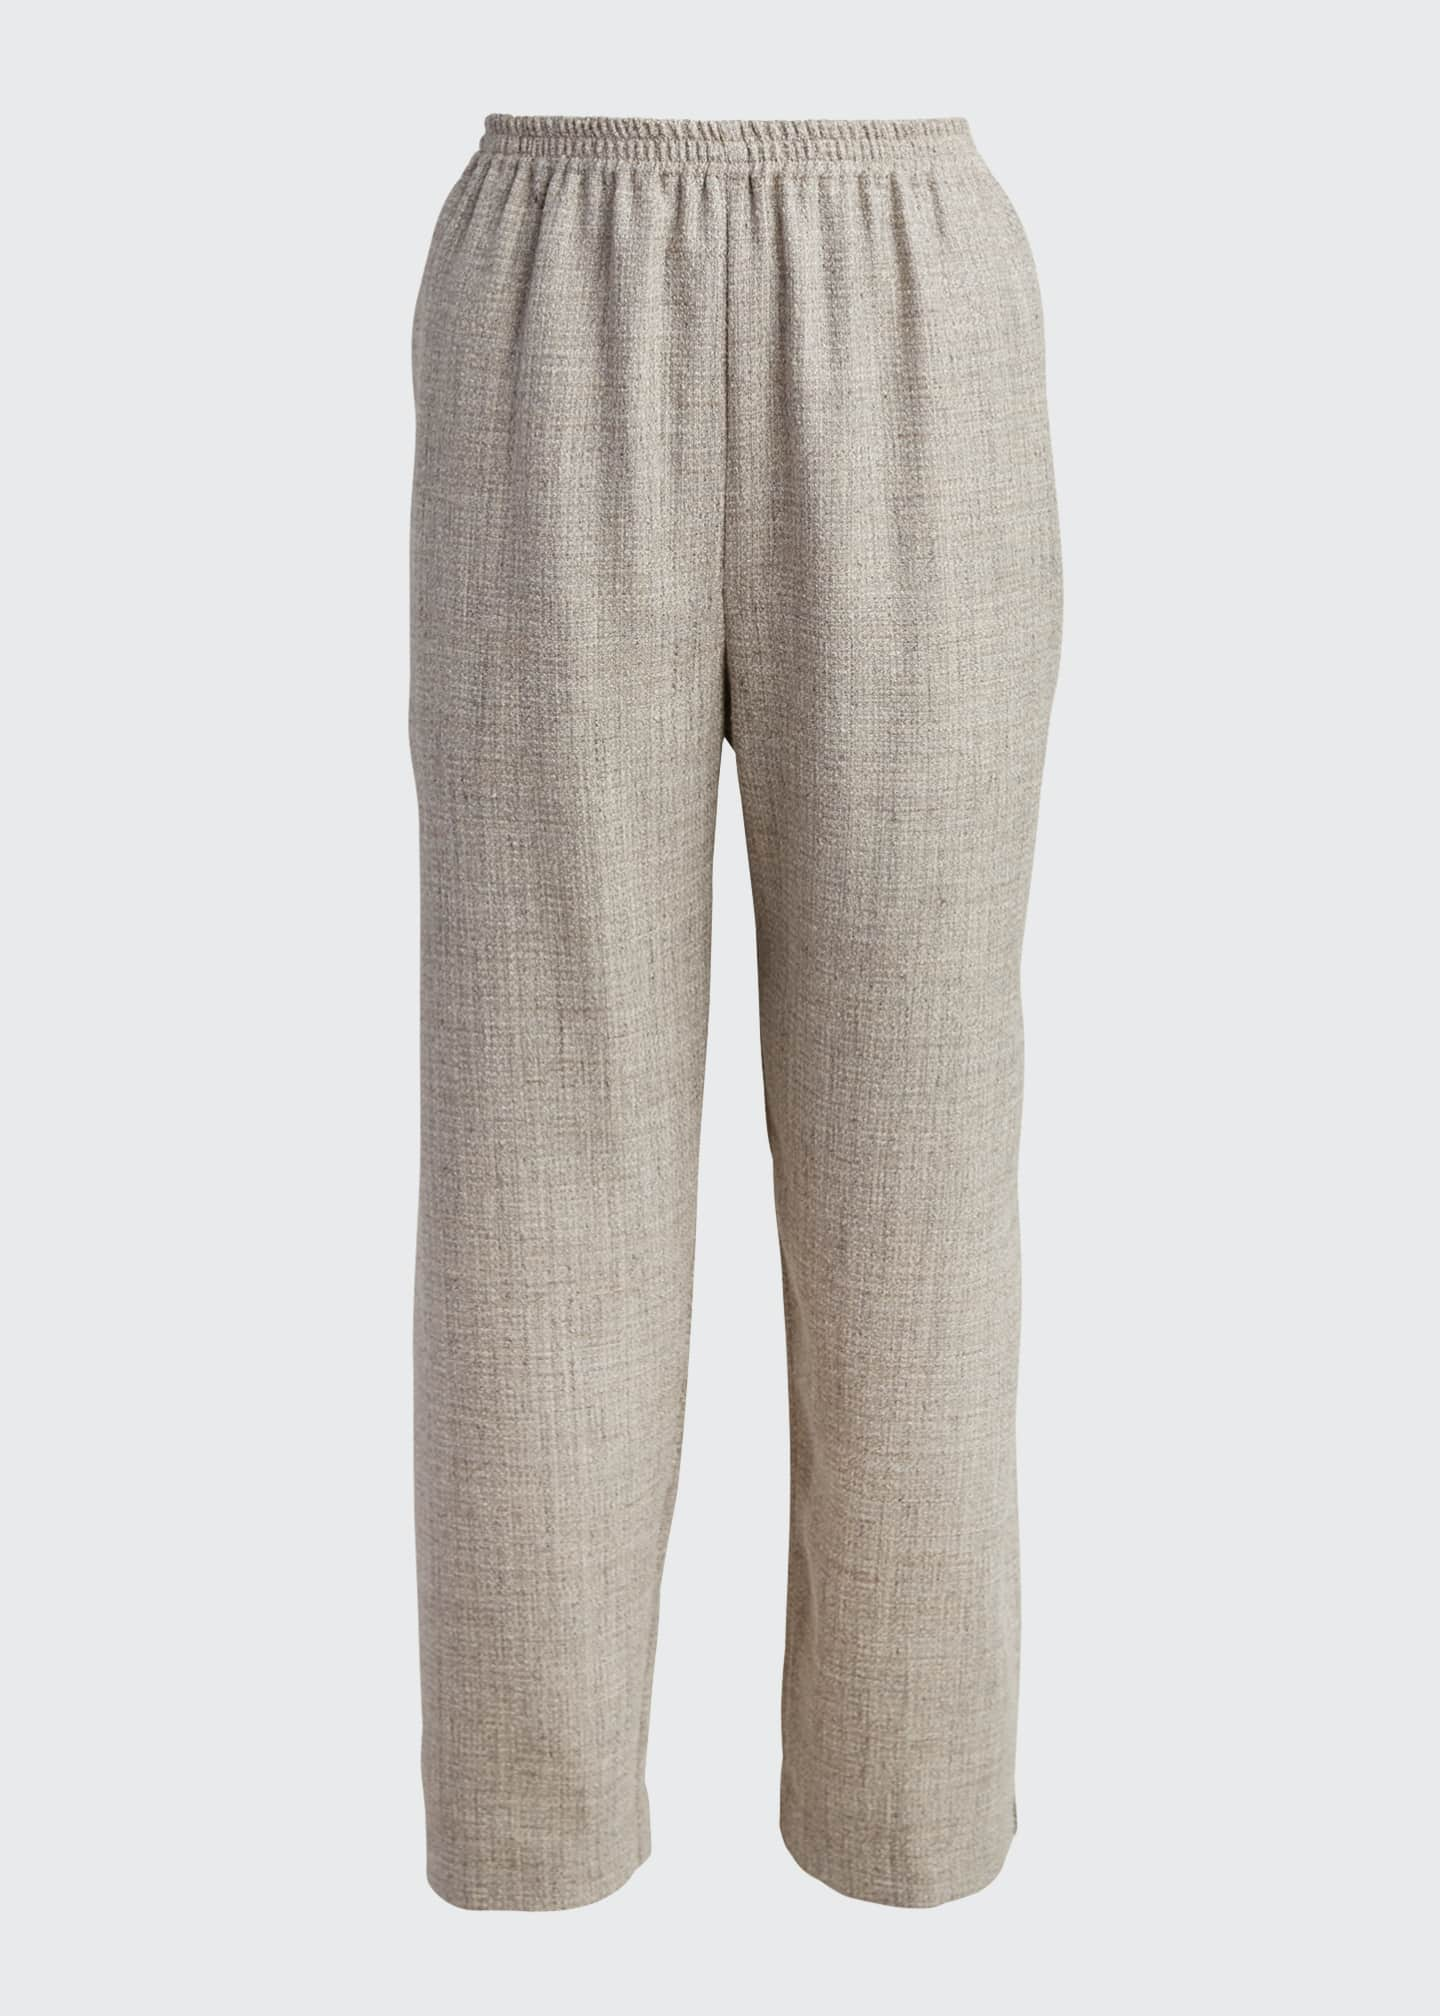 Image 5 of 5: Japanese Wool Trousers